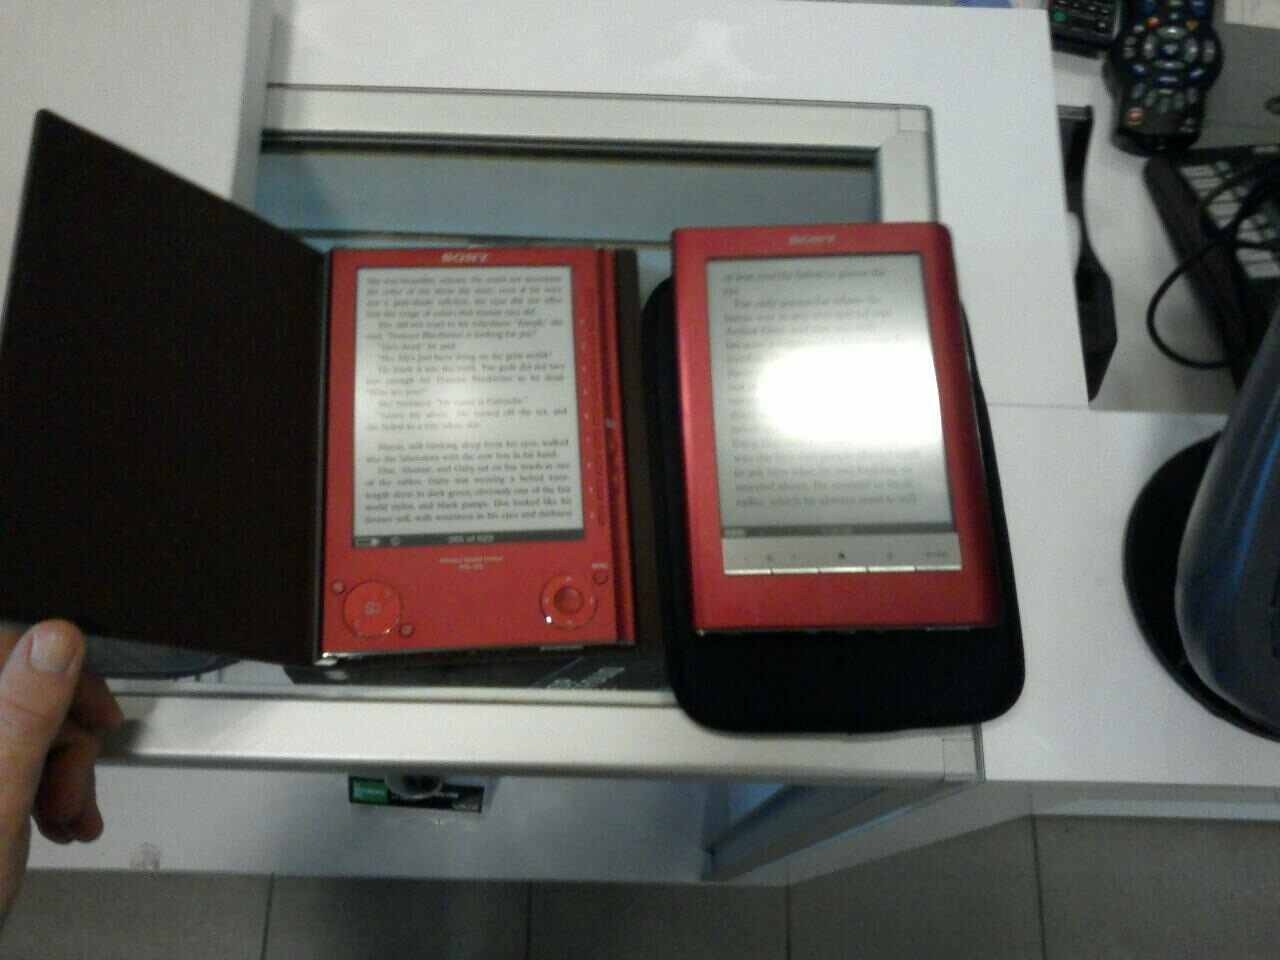 Sony PRS-600 ebook readers spotted in wild, judged [Video]